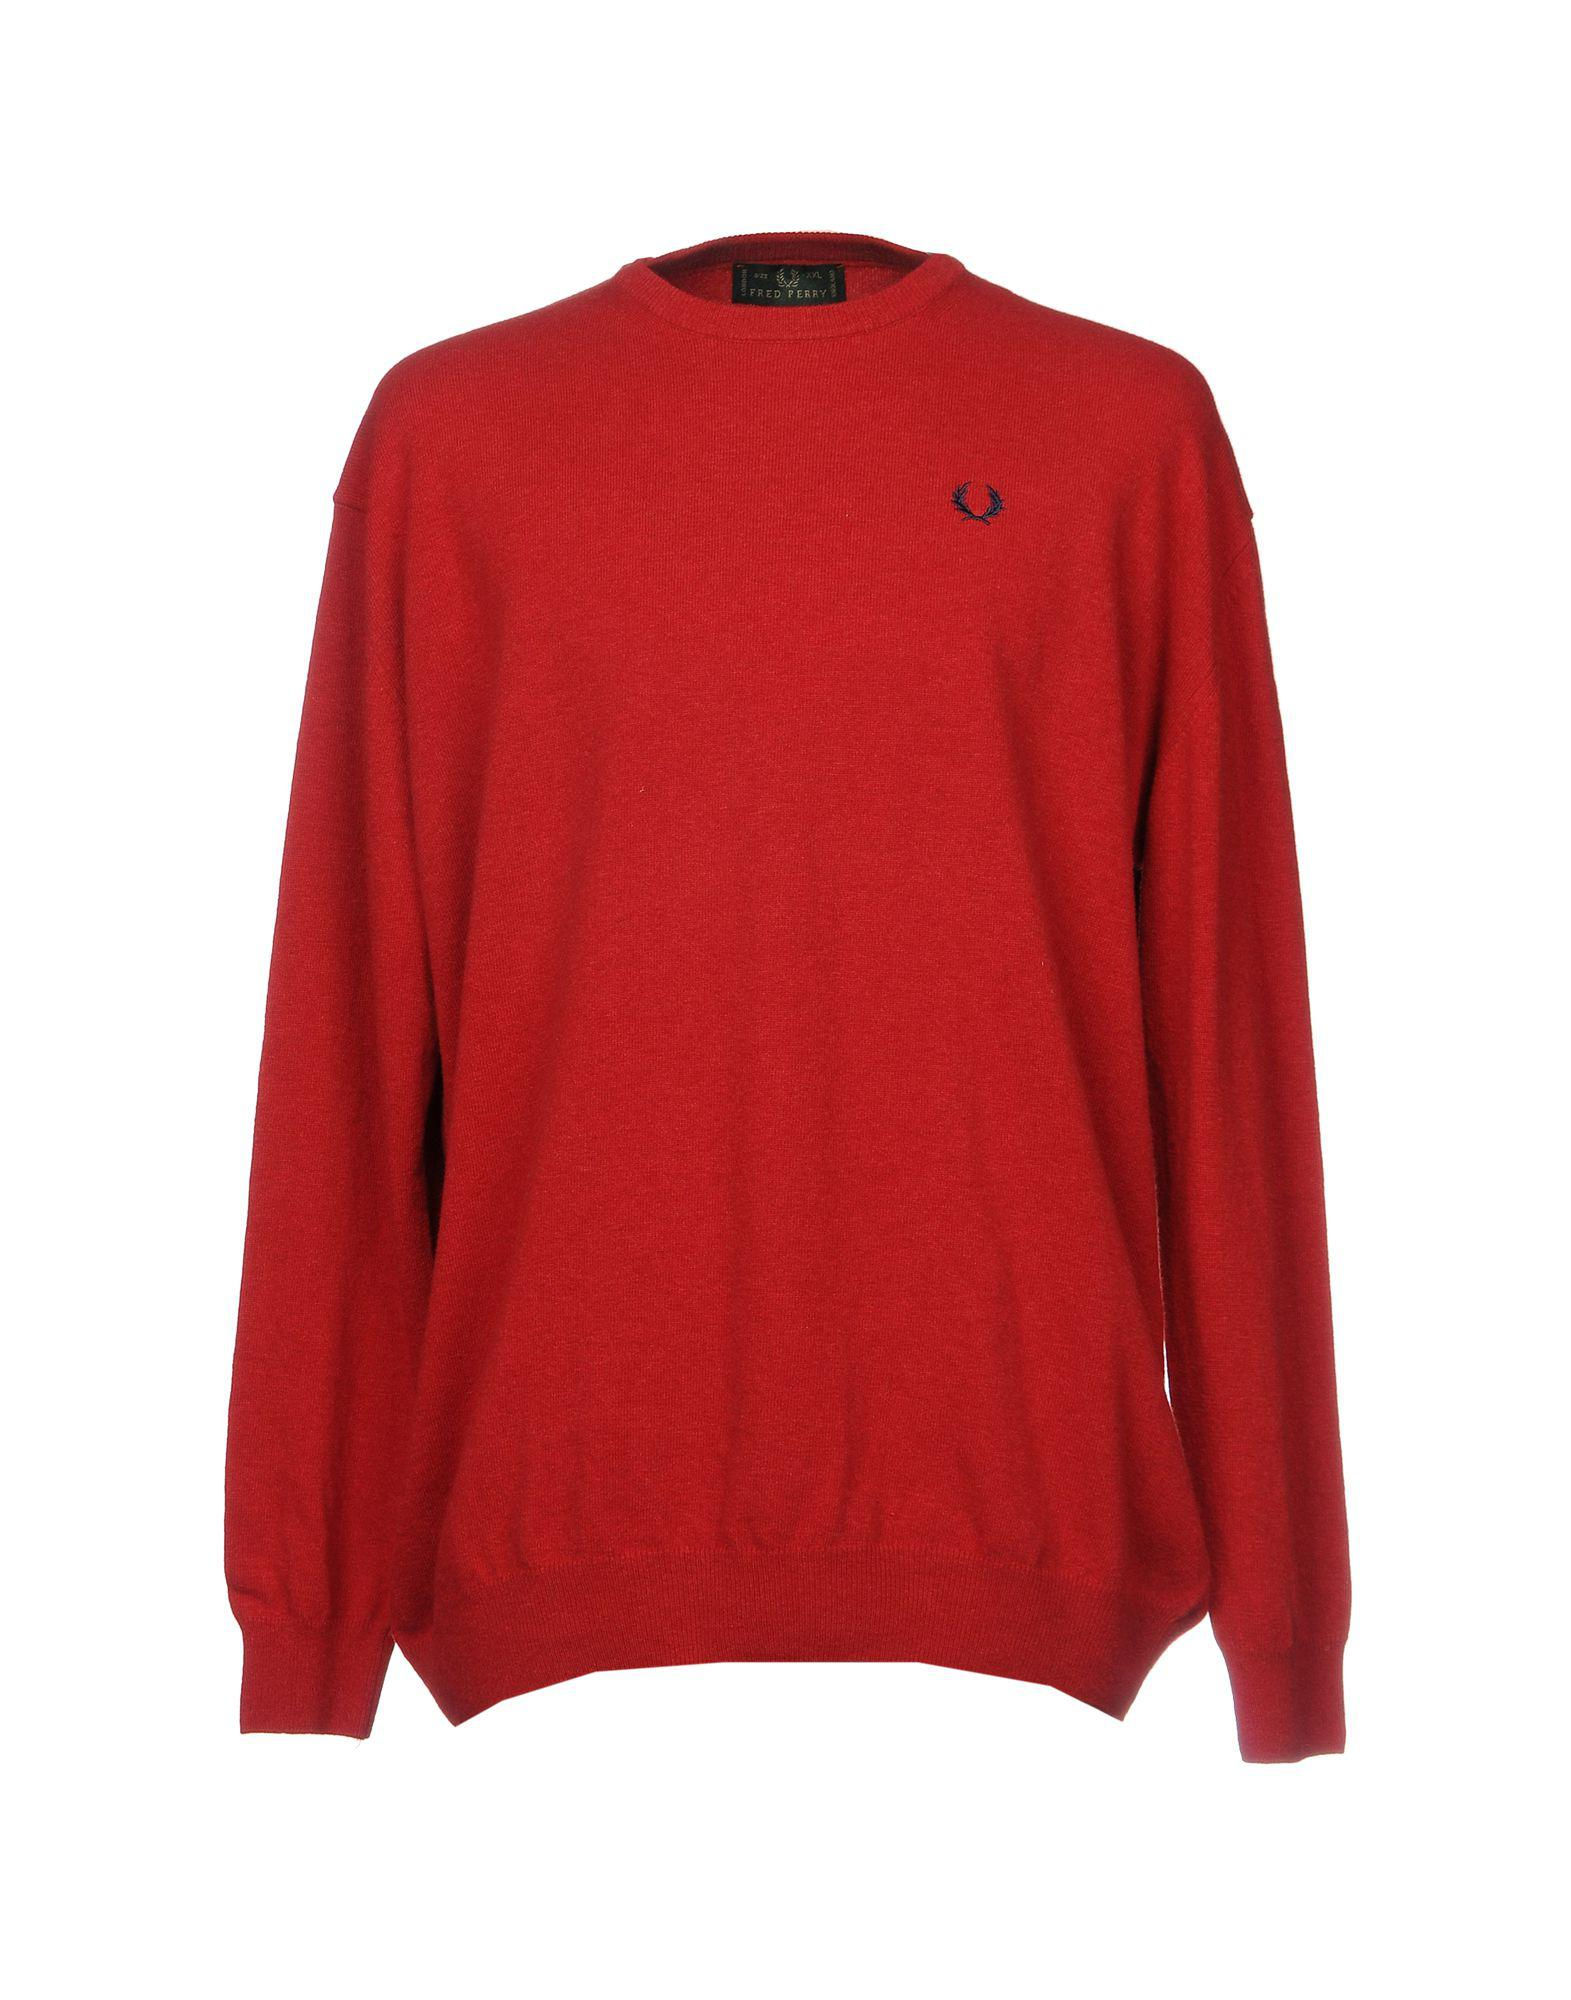 701762cdf5ce Fred Perry Jumper in Red for Men - Lyst